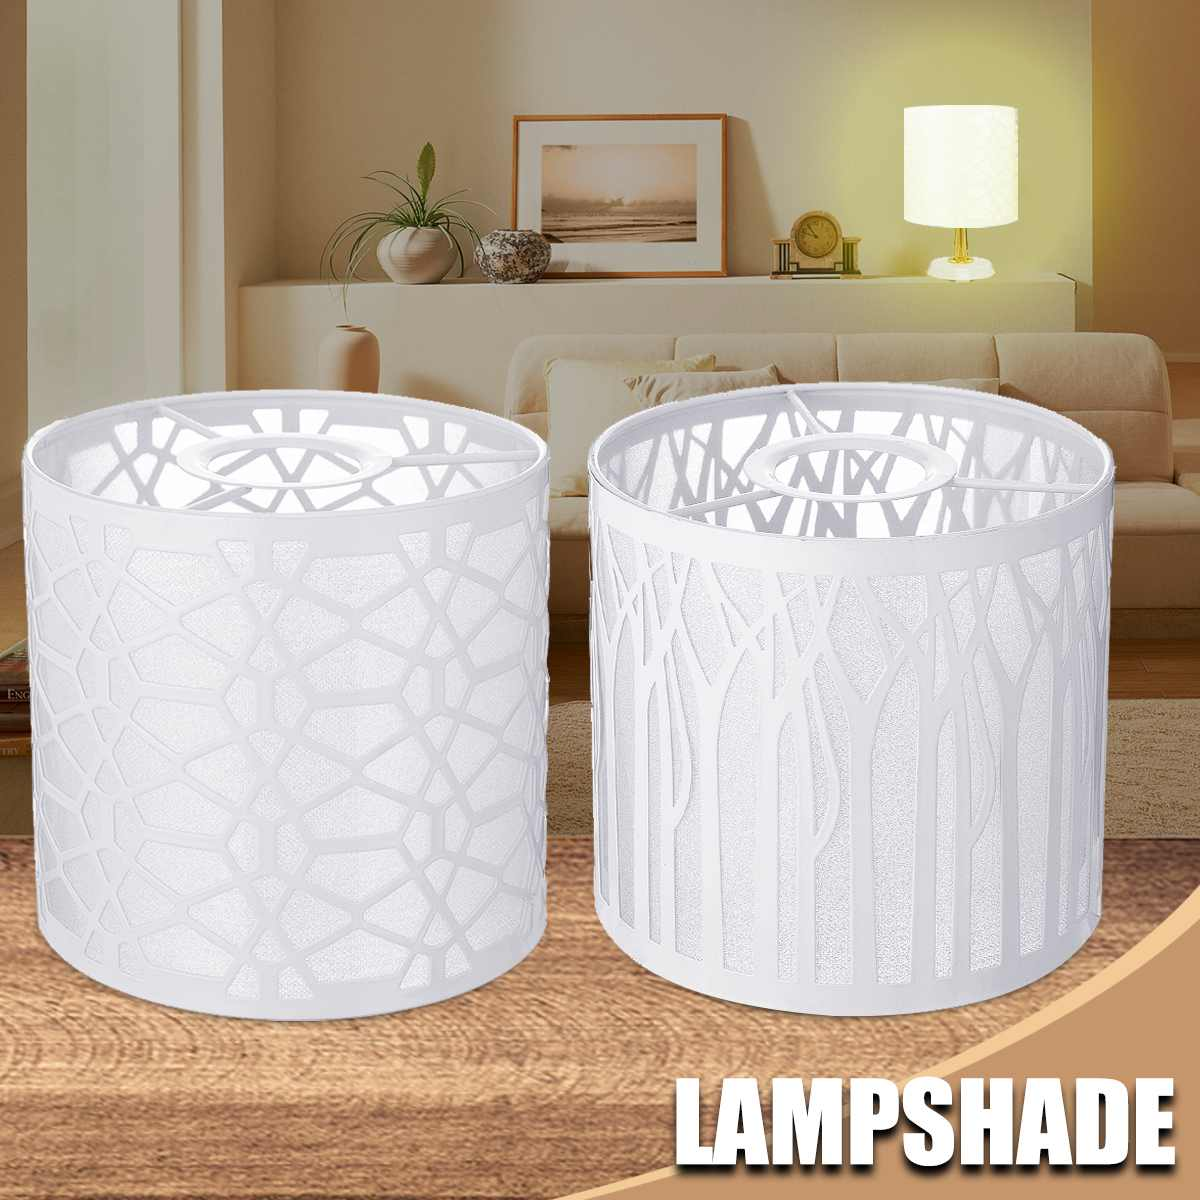 Modern Metal Lampshade Forest Water Cube Design Lamp Cover Table Ceiling Pendant Light Shade Lighting Accessories Decoration